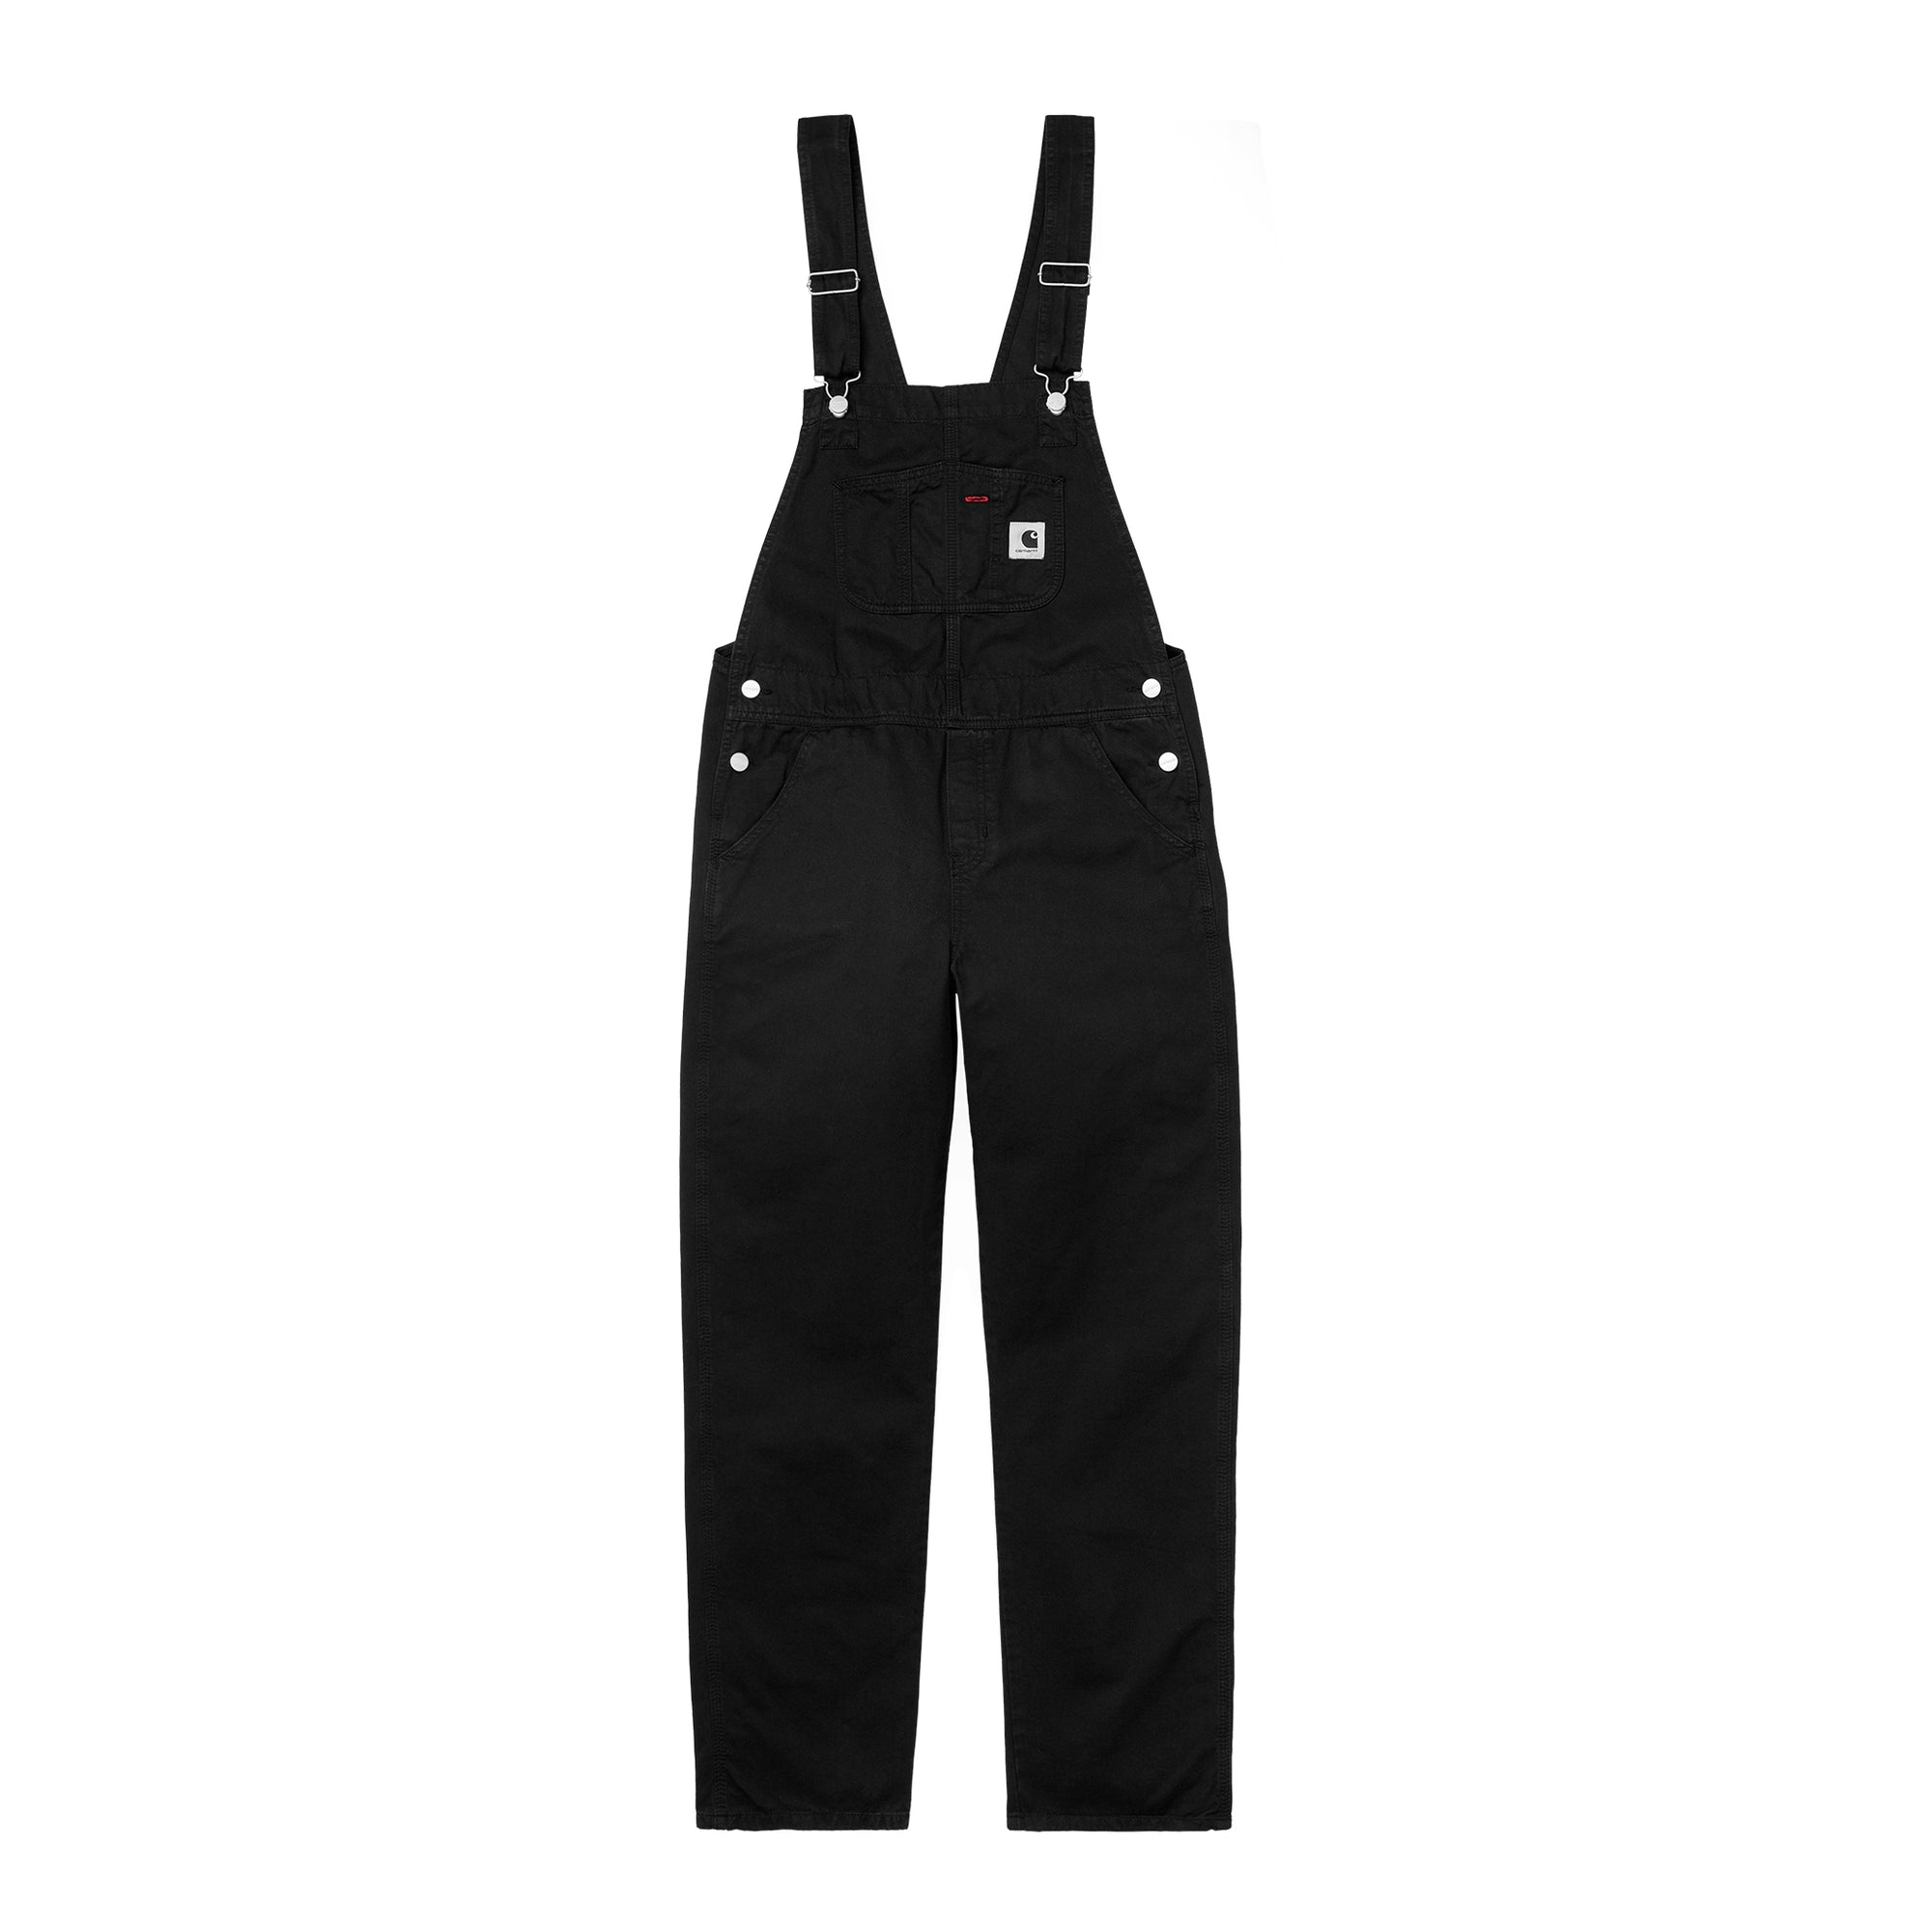 Carhartt WIP Womens Bib Overall Straight: Black - The Union Project